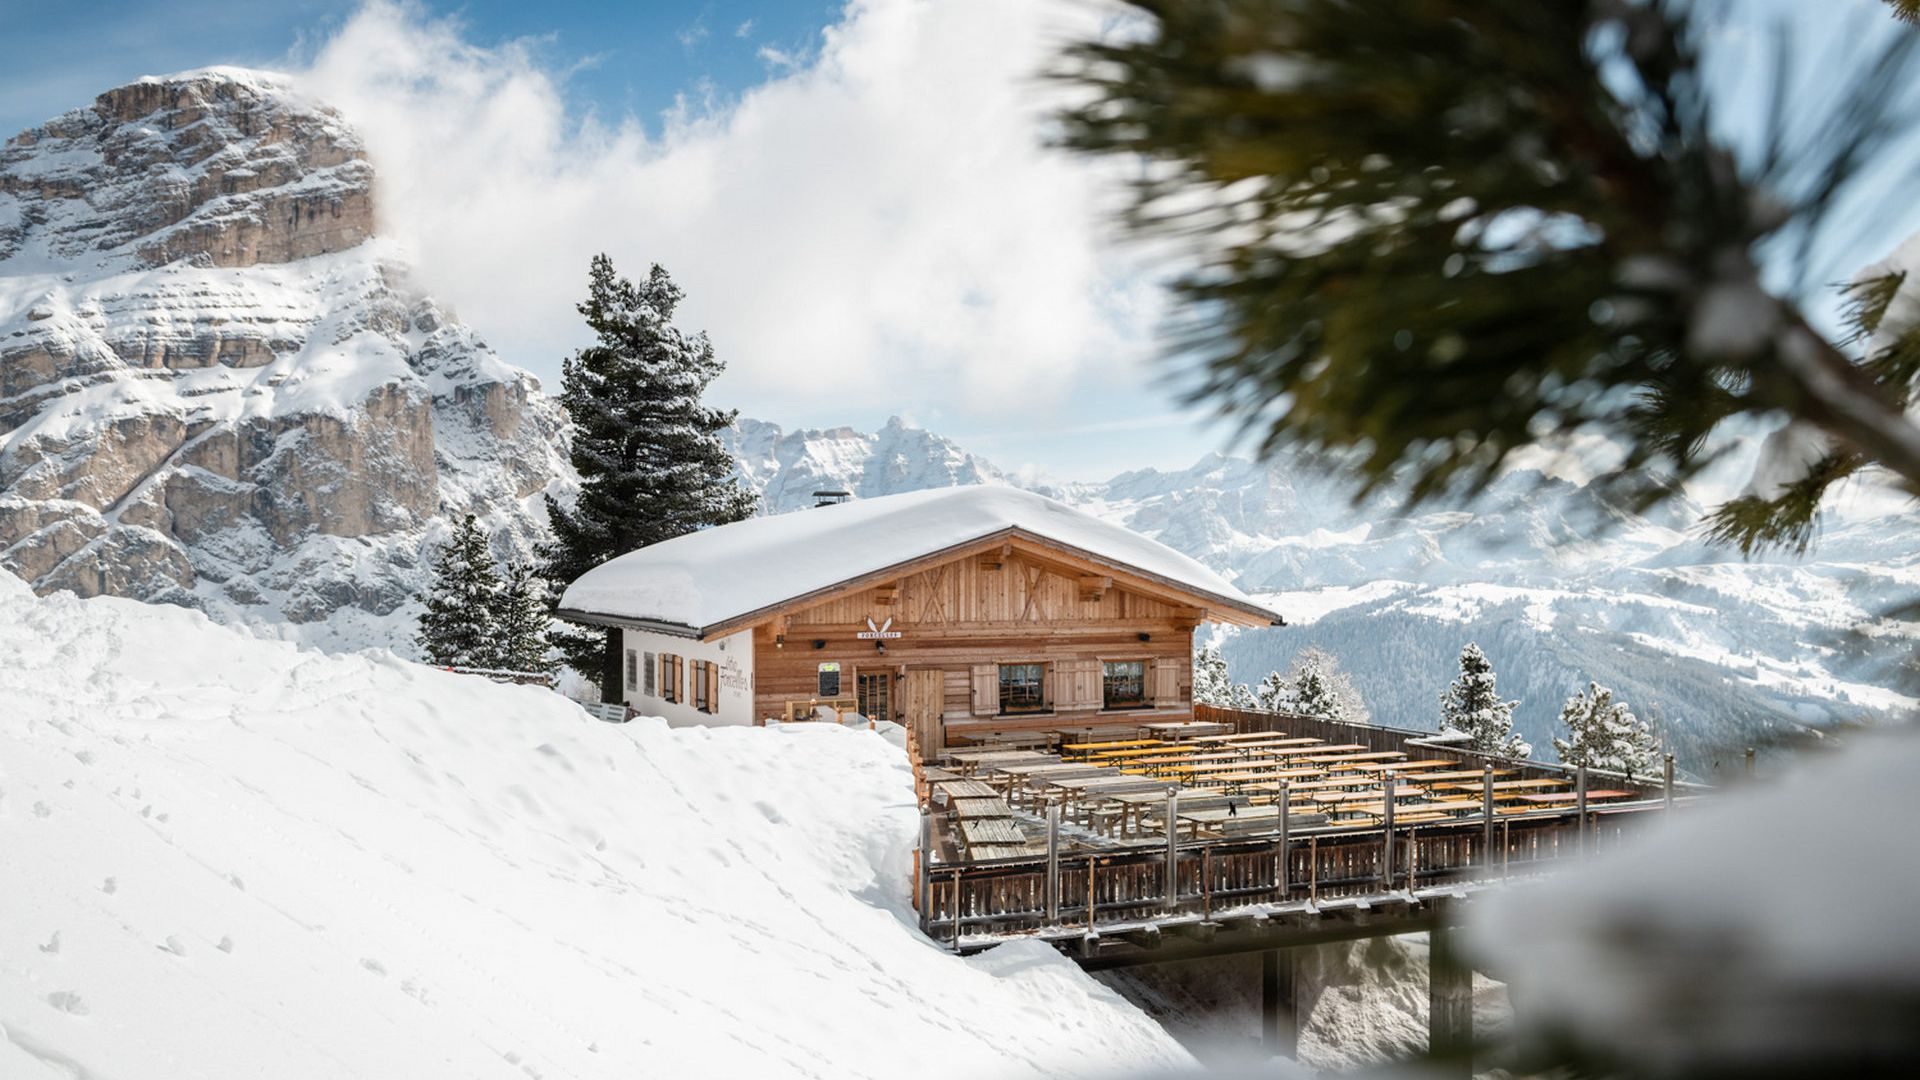 Image: Mountain hut Ütia Forcelles, Colfosco